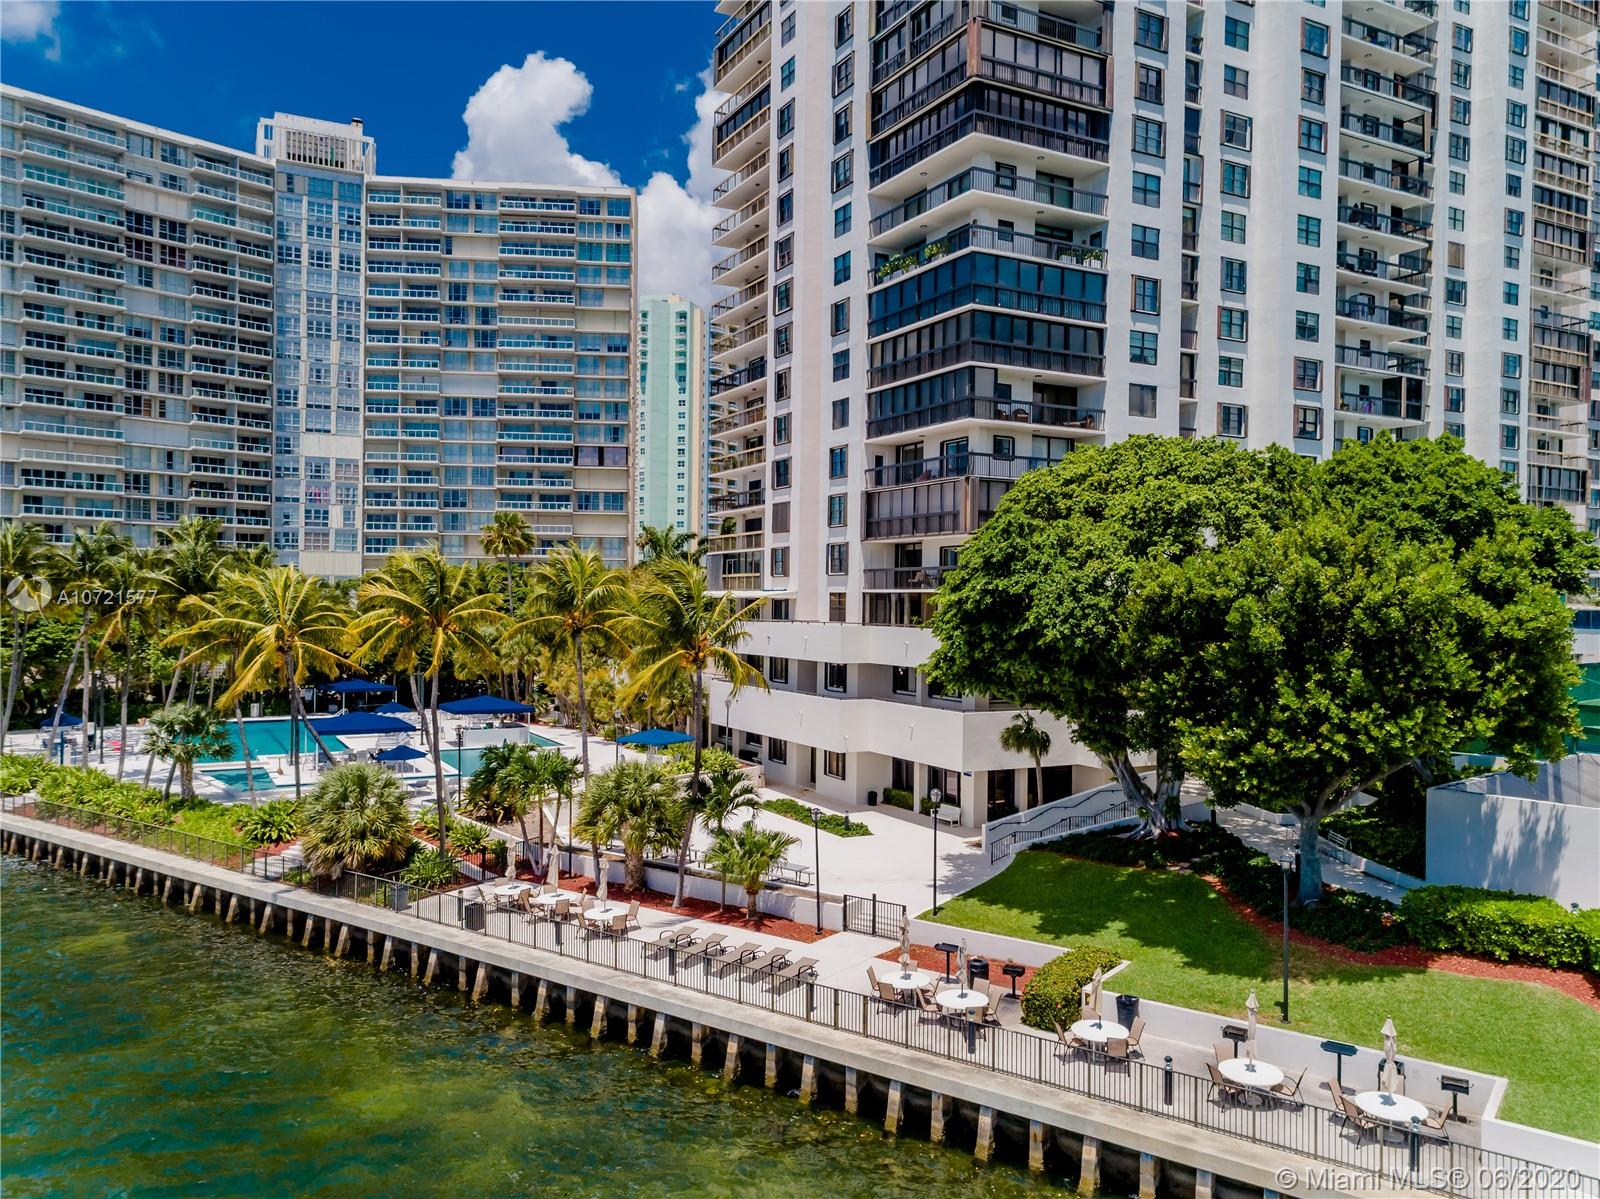 Brickell Bay Club image #49